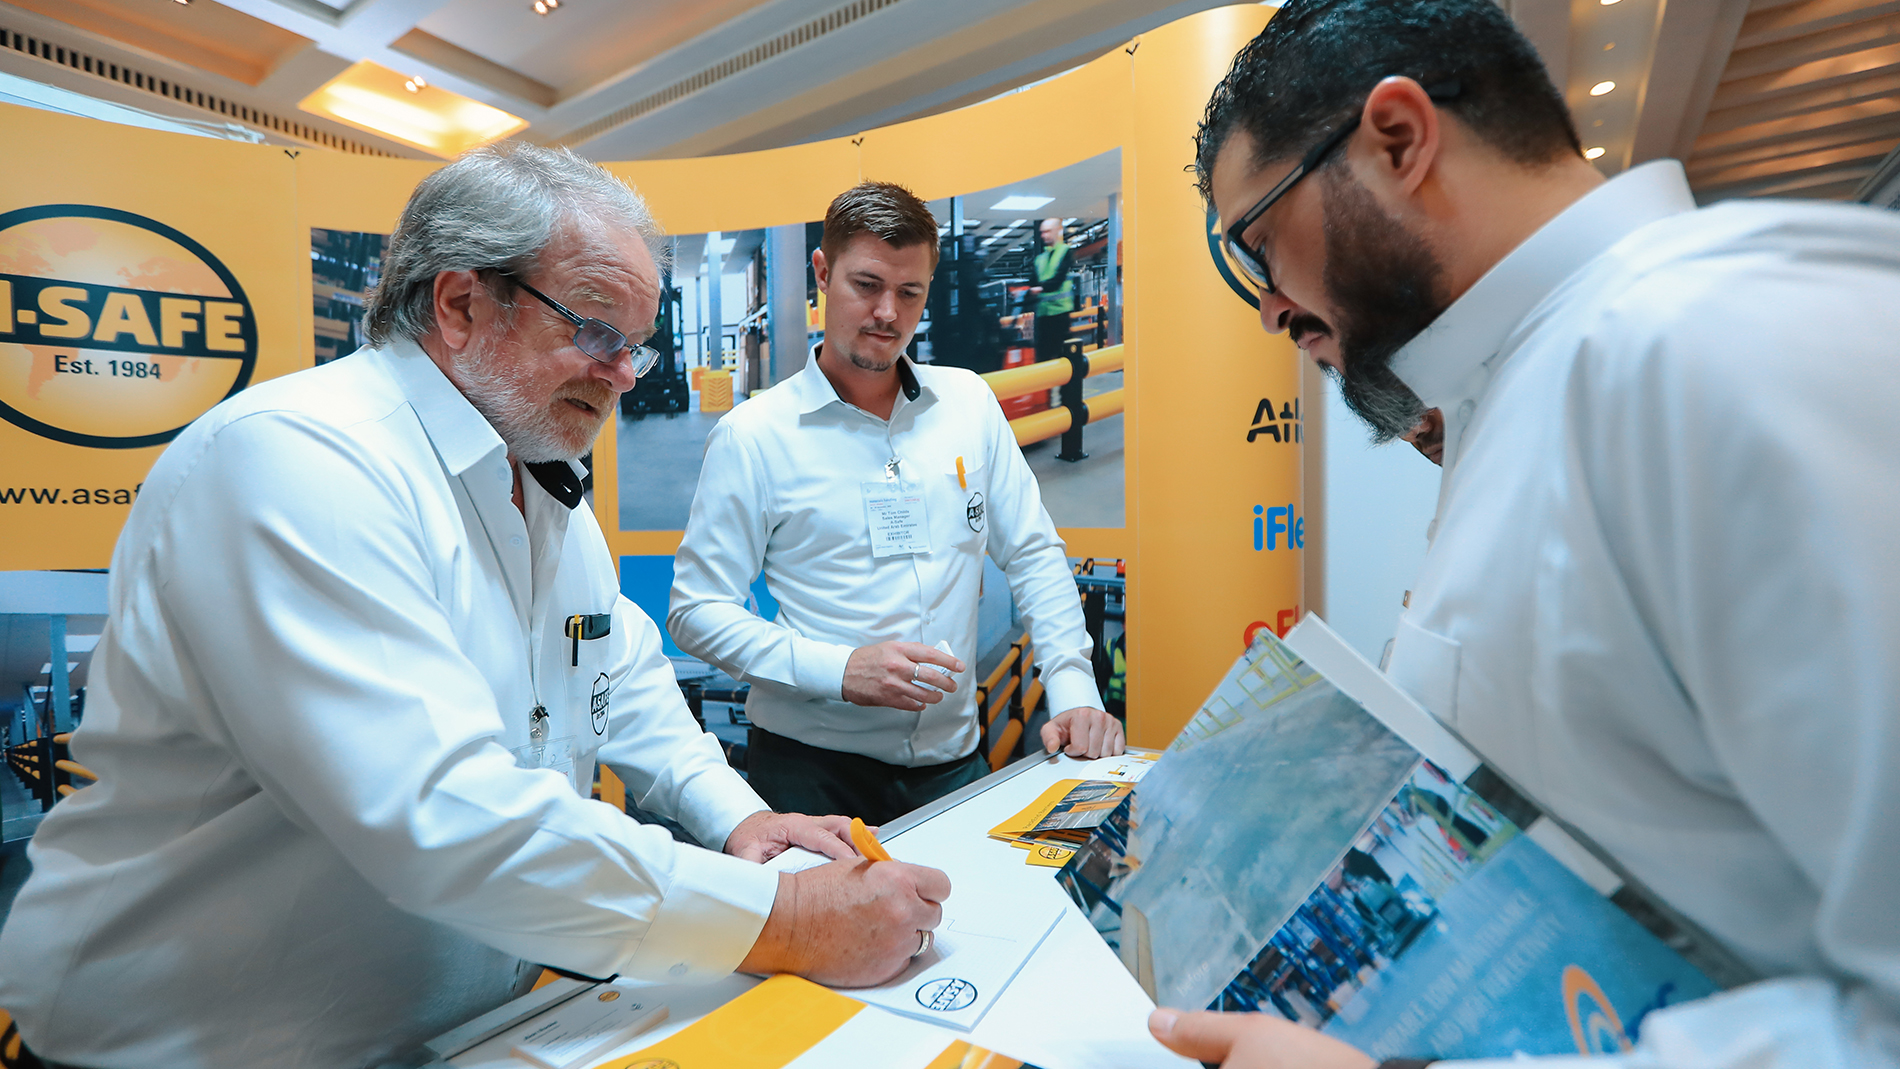 Materials Handling Middle East - About the show